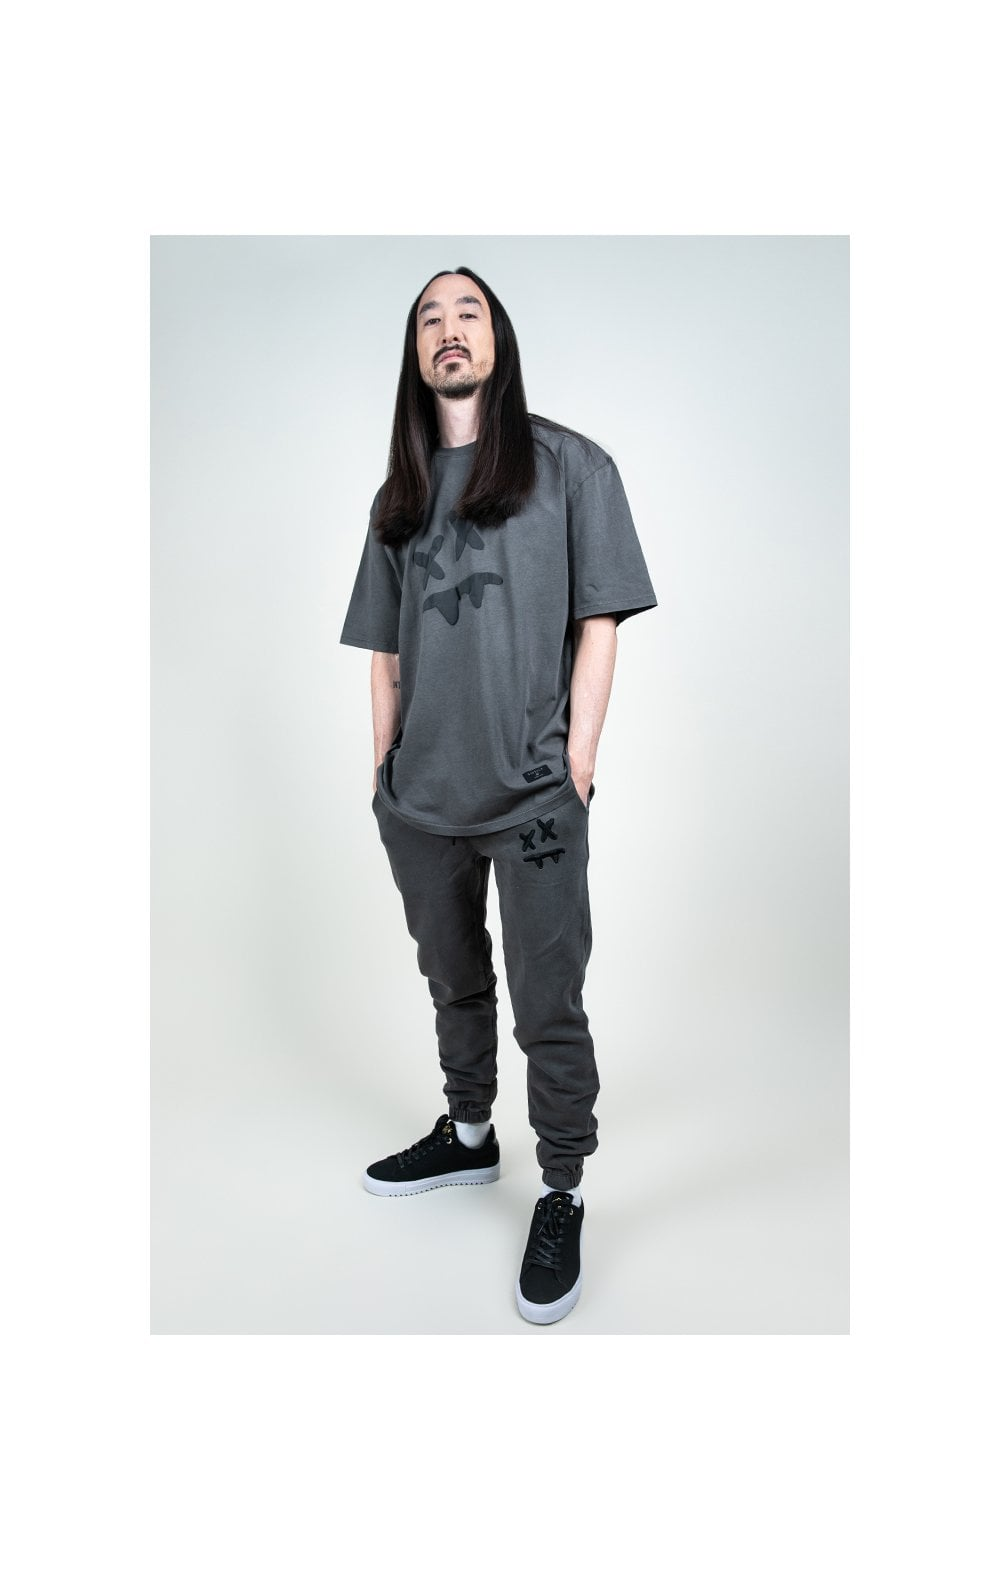 Load image into Gallery viewer, SikSilk X Steve Aoki S/S Oversize Essential Tee – Washed Grey (6)